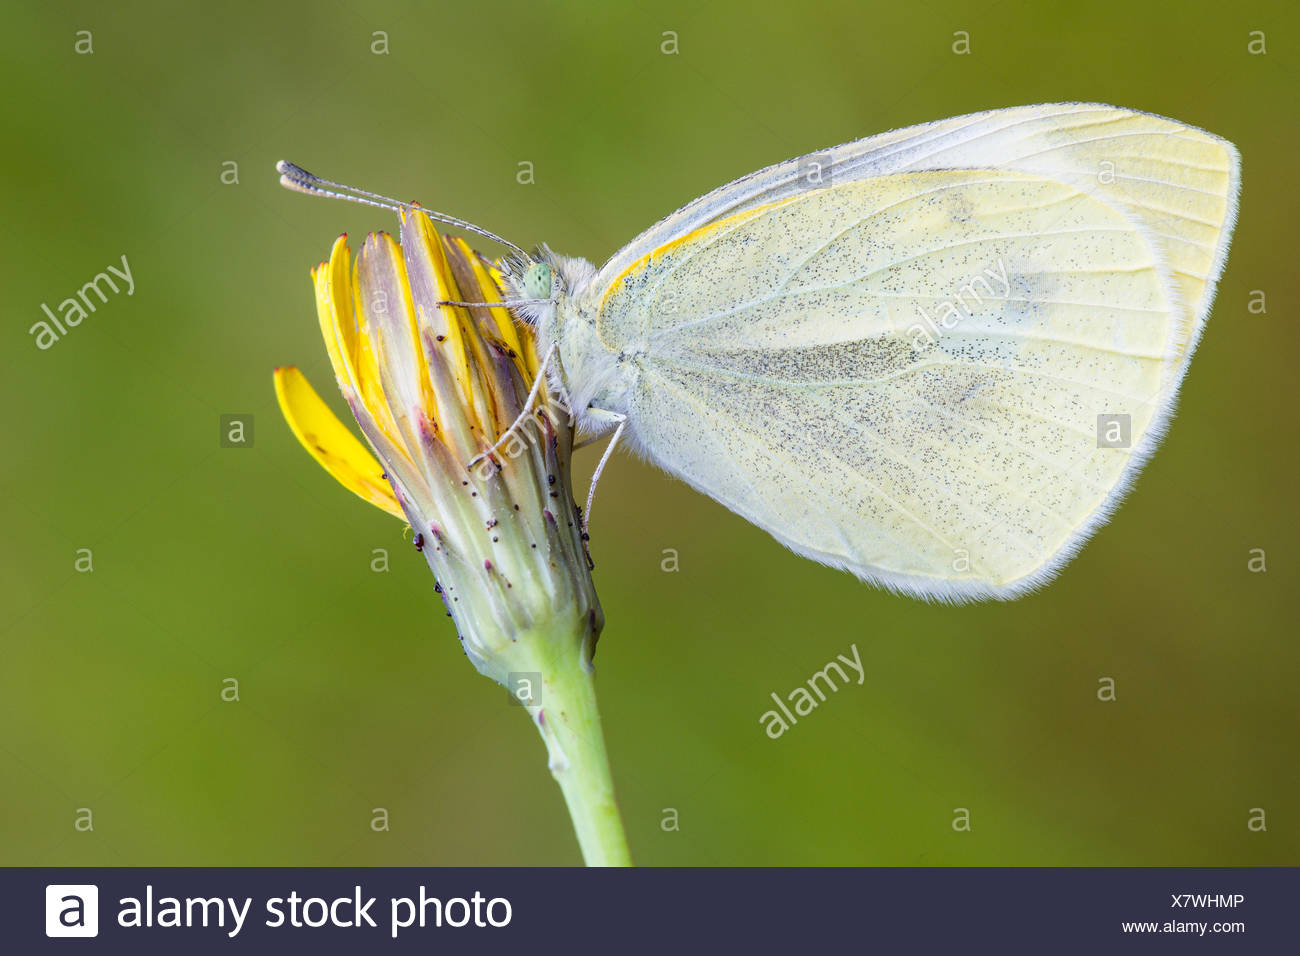 European cabbage butterfly - Stock Image